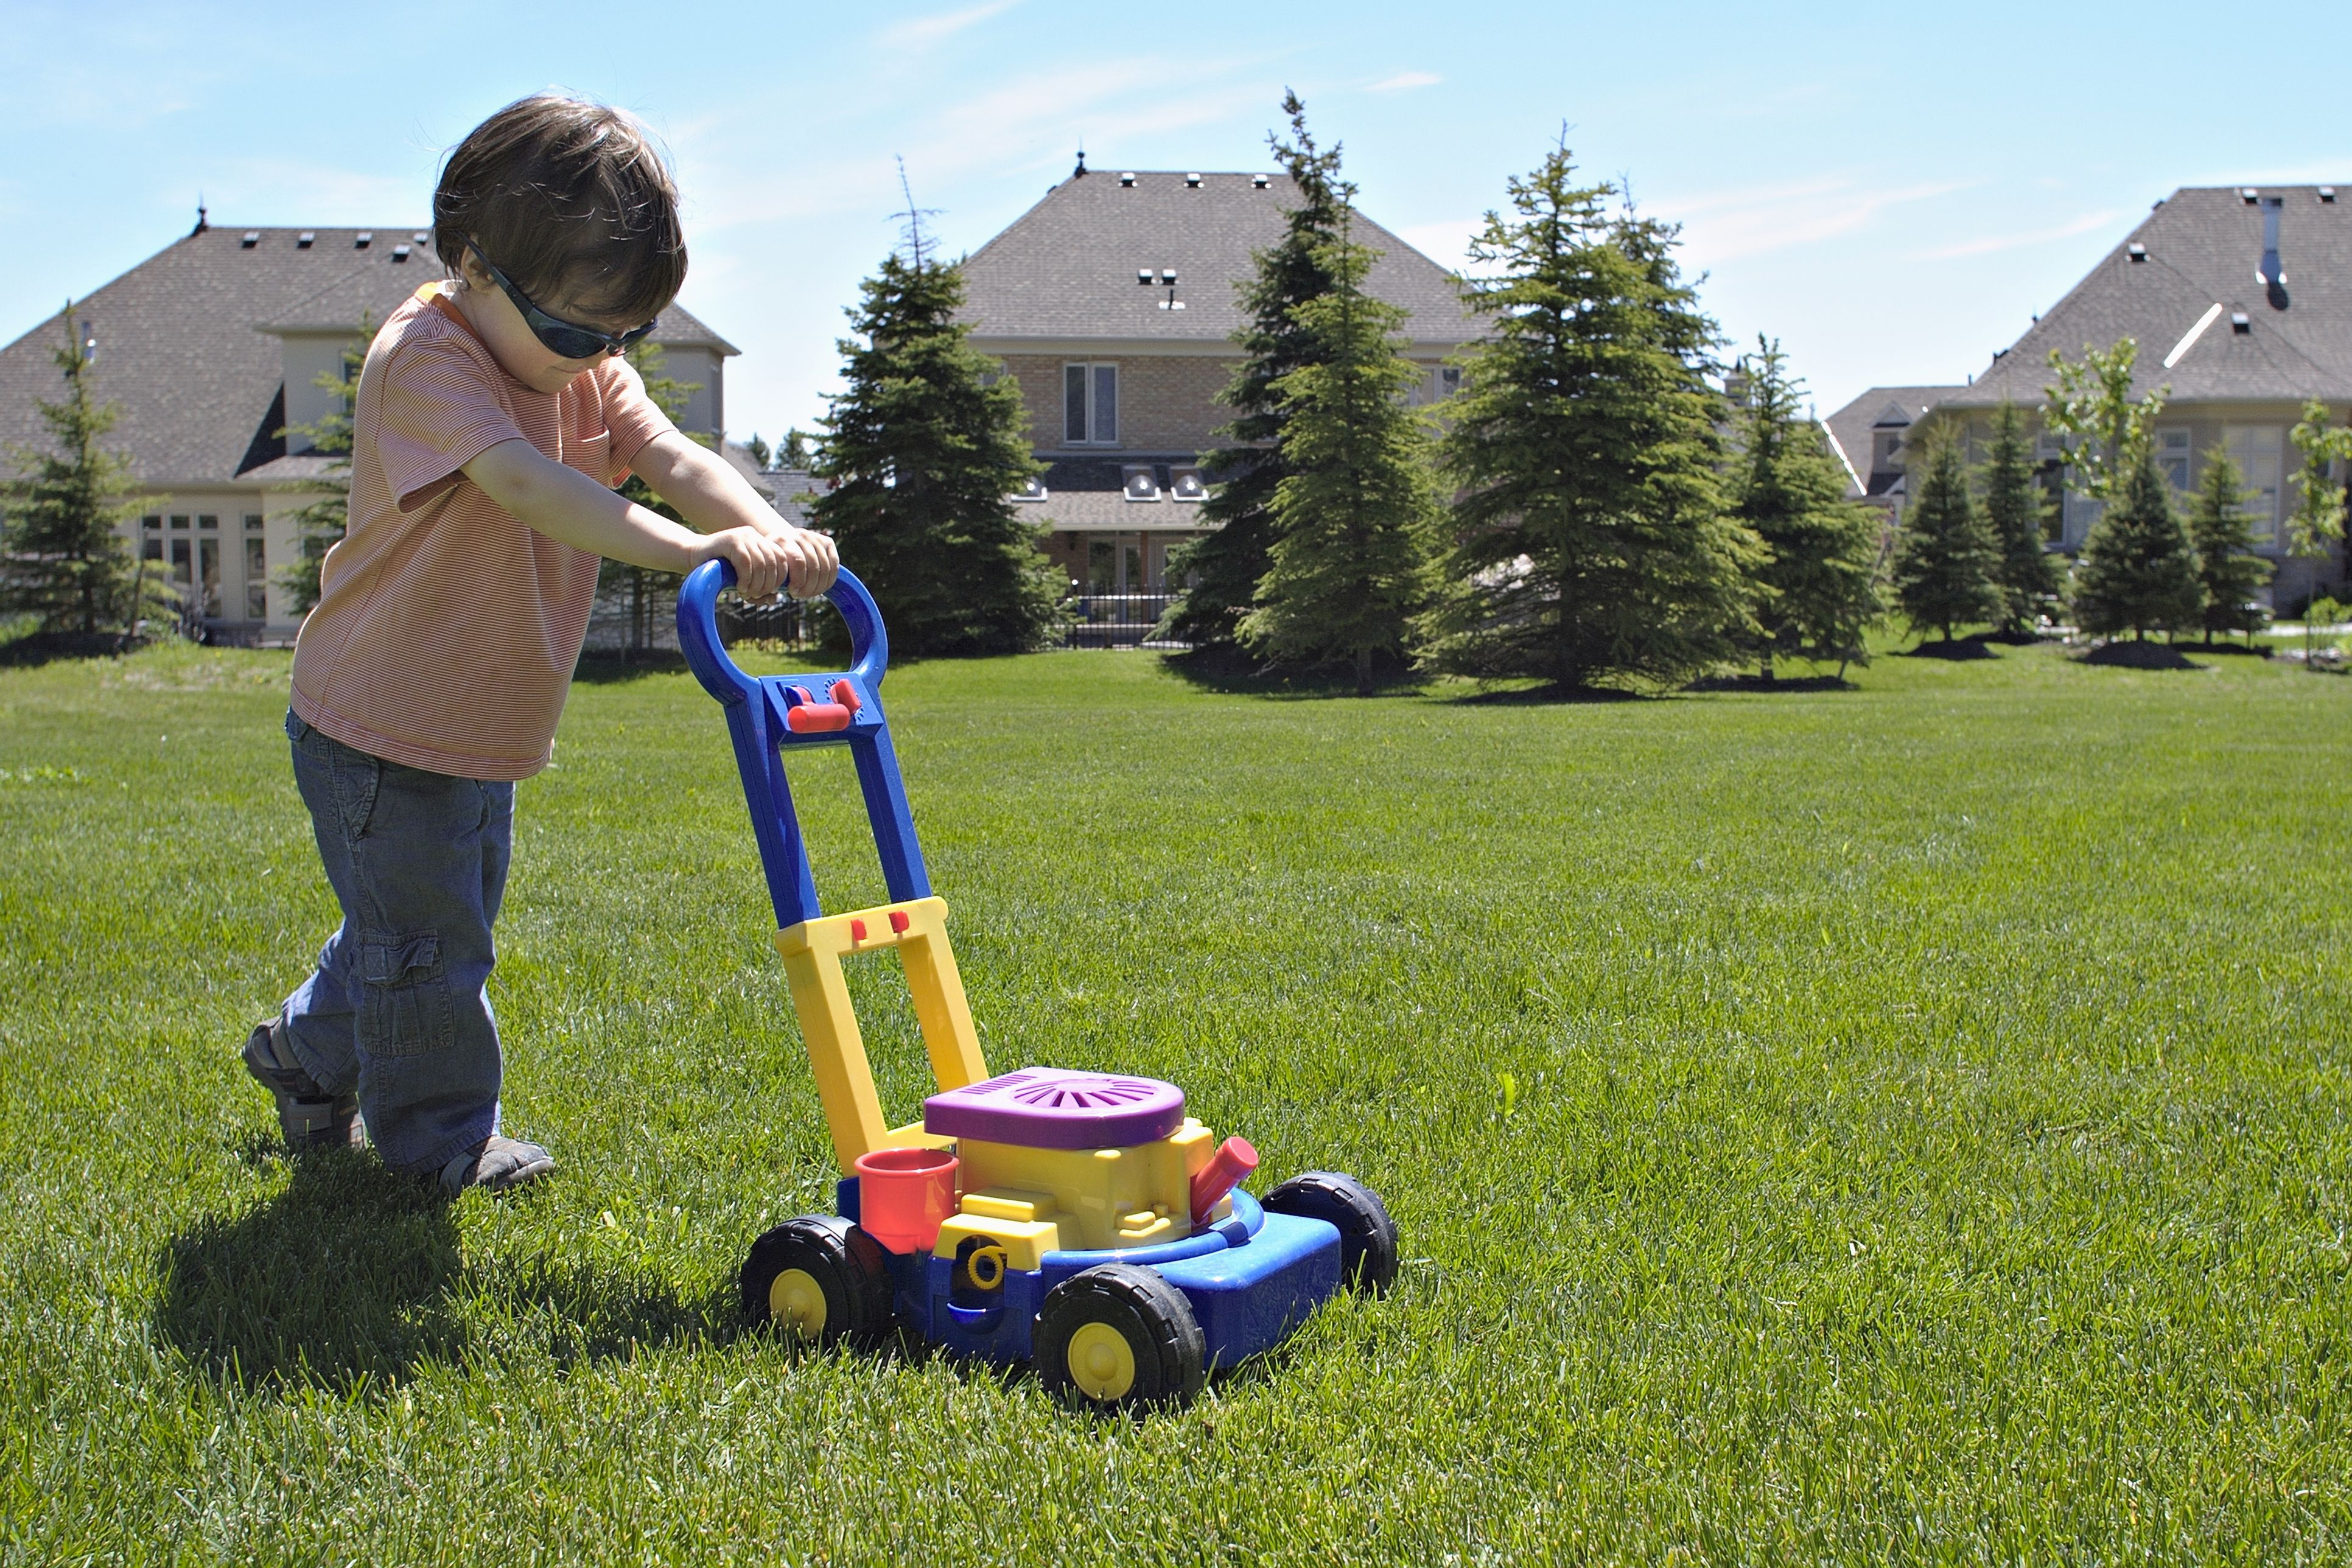 The Best Toys For 18 Month Old Boys Of